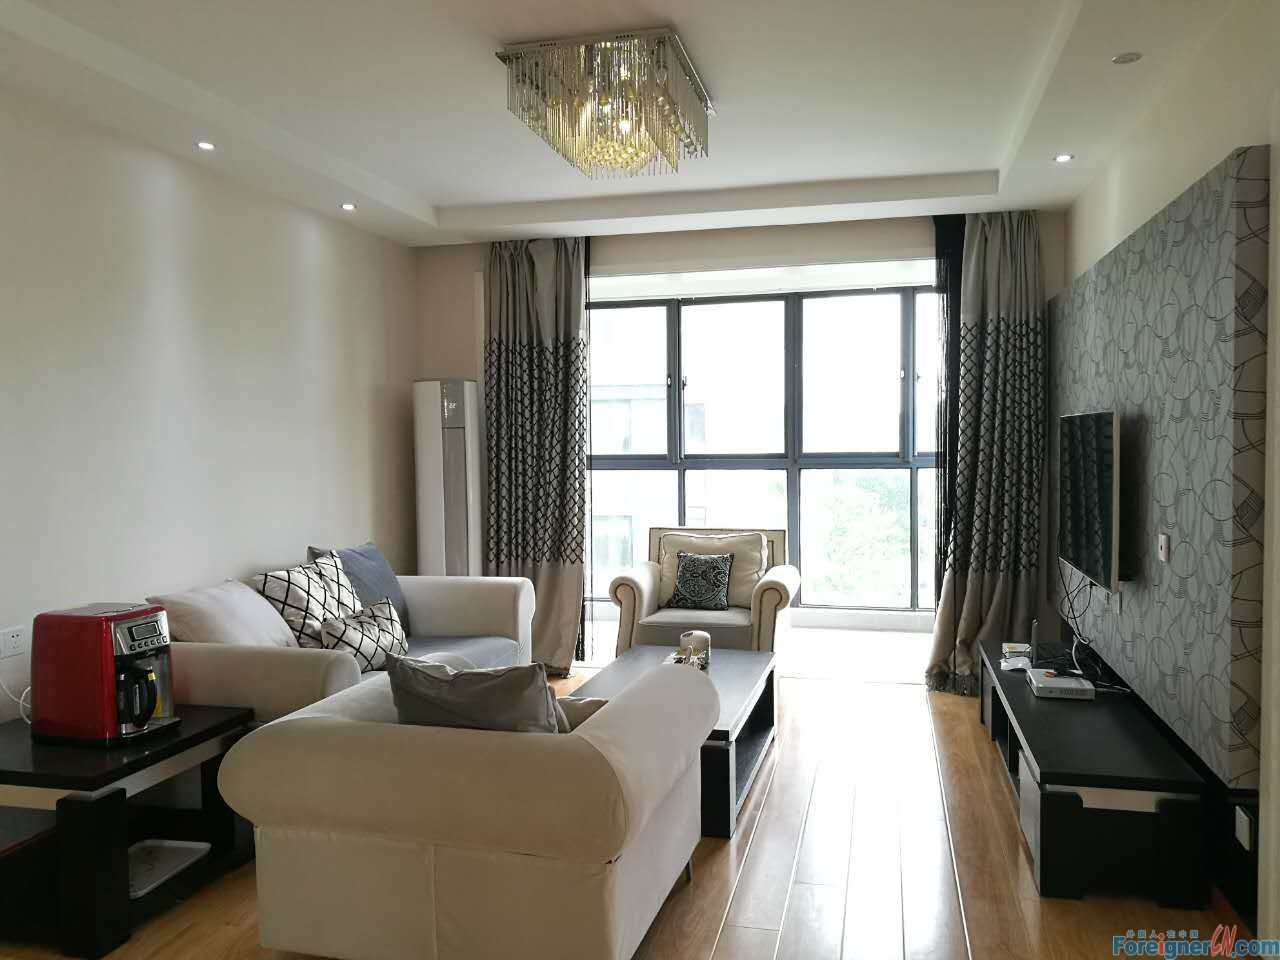 Youngor city,new 2br apt, modern style, nice funiture, CBD in the east